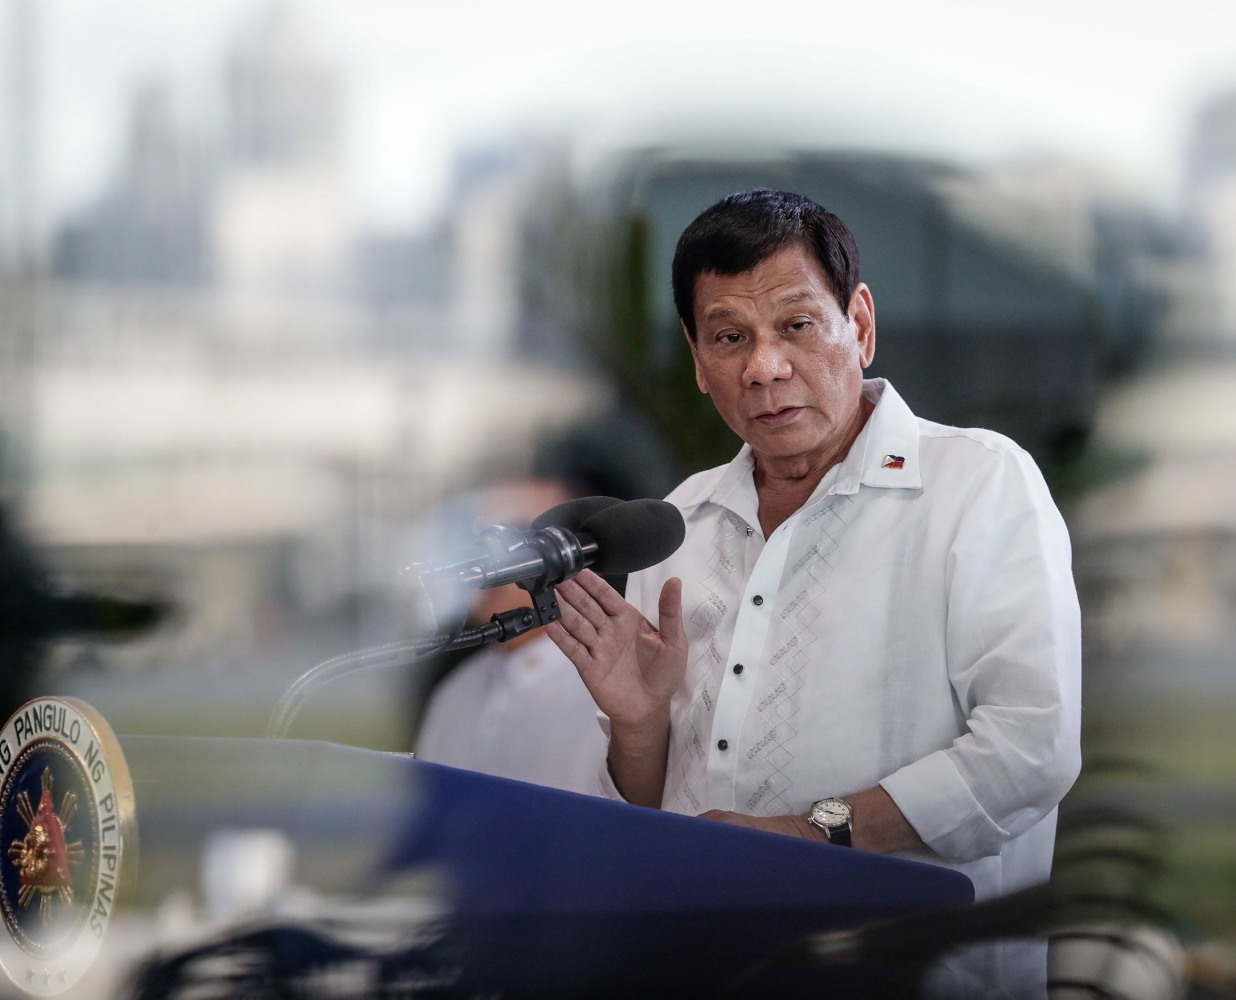 PM raises human rights concerns with Duterte